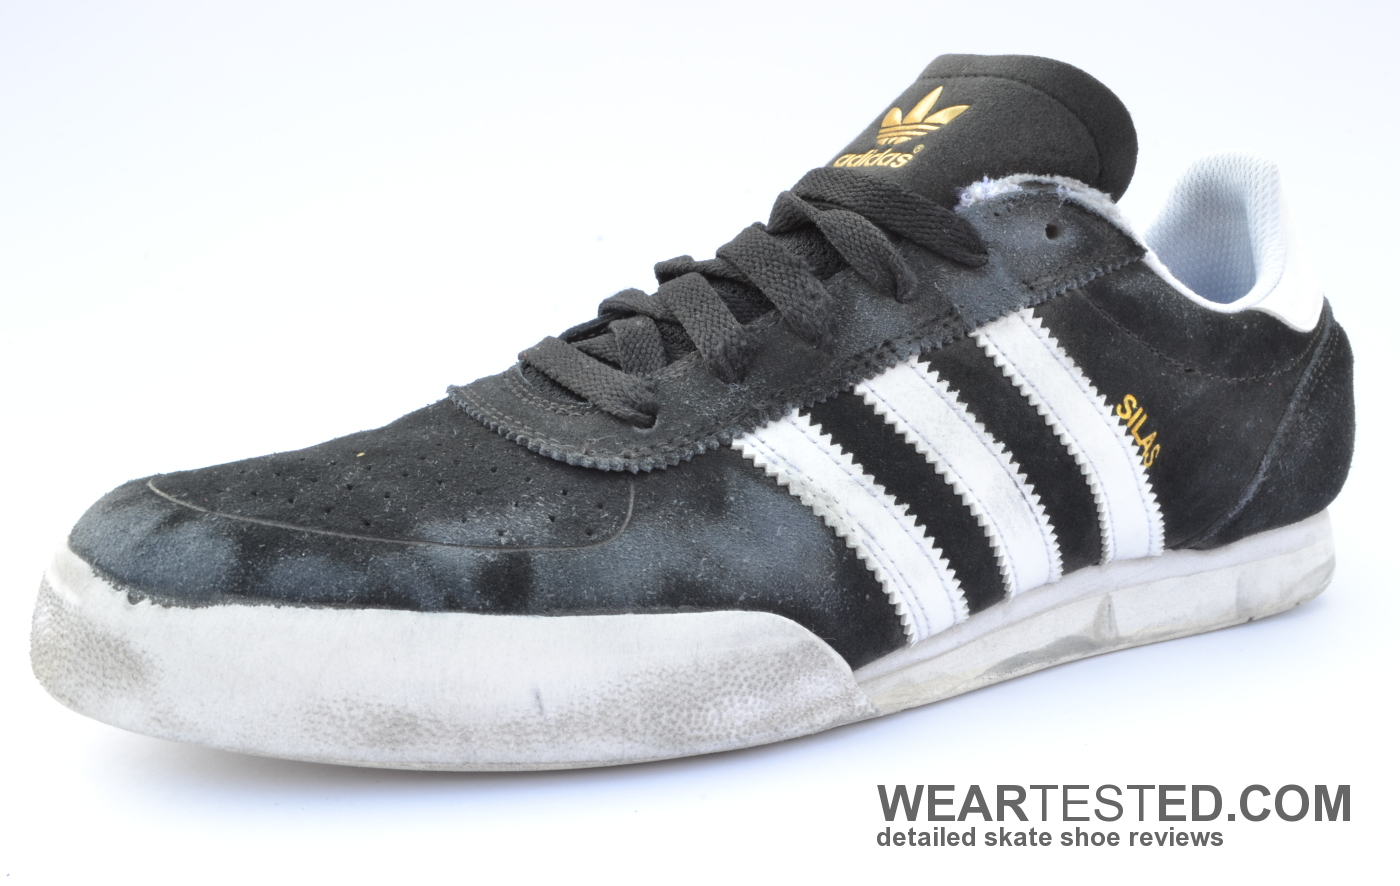 0087dd3bbe6e adidas Silas SLR - Weartested - detailed skate shoe reviews